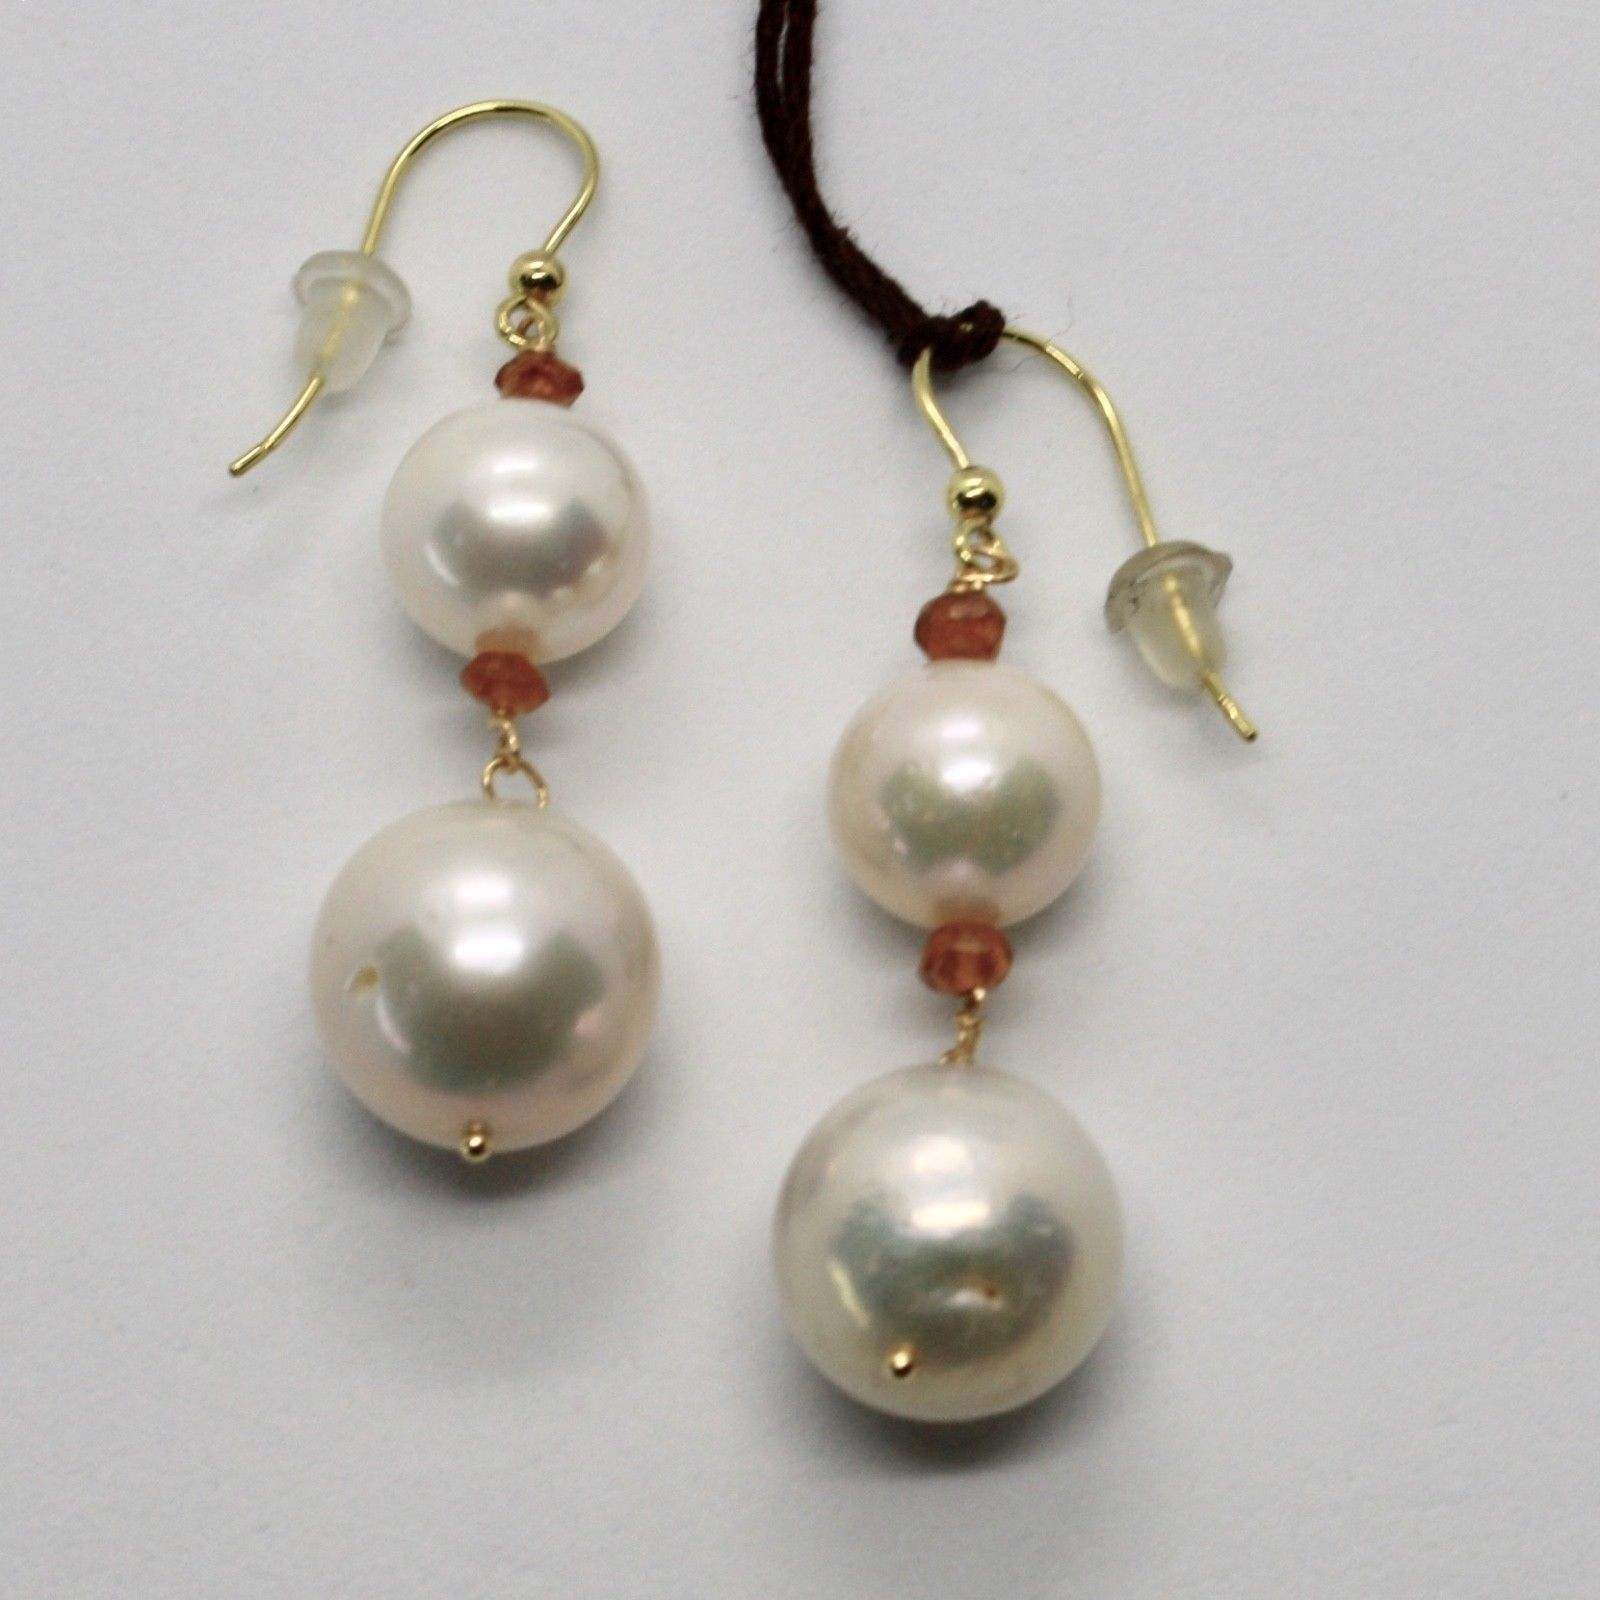 SOLID 18K YELLOW GOLD EARRINGS WITH WHITE FW PEARL AND CITRINE MADE IN ITALY